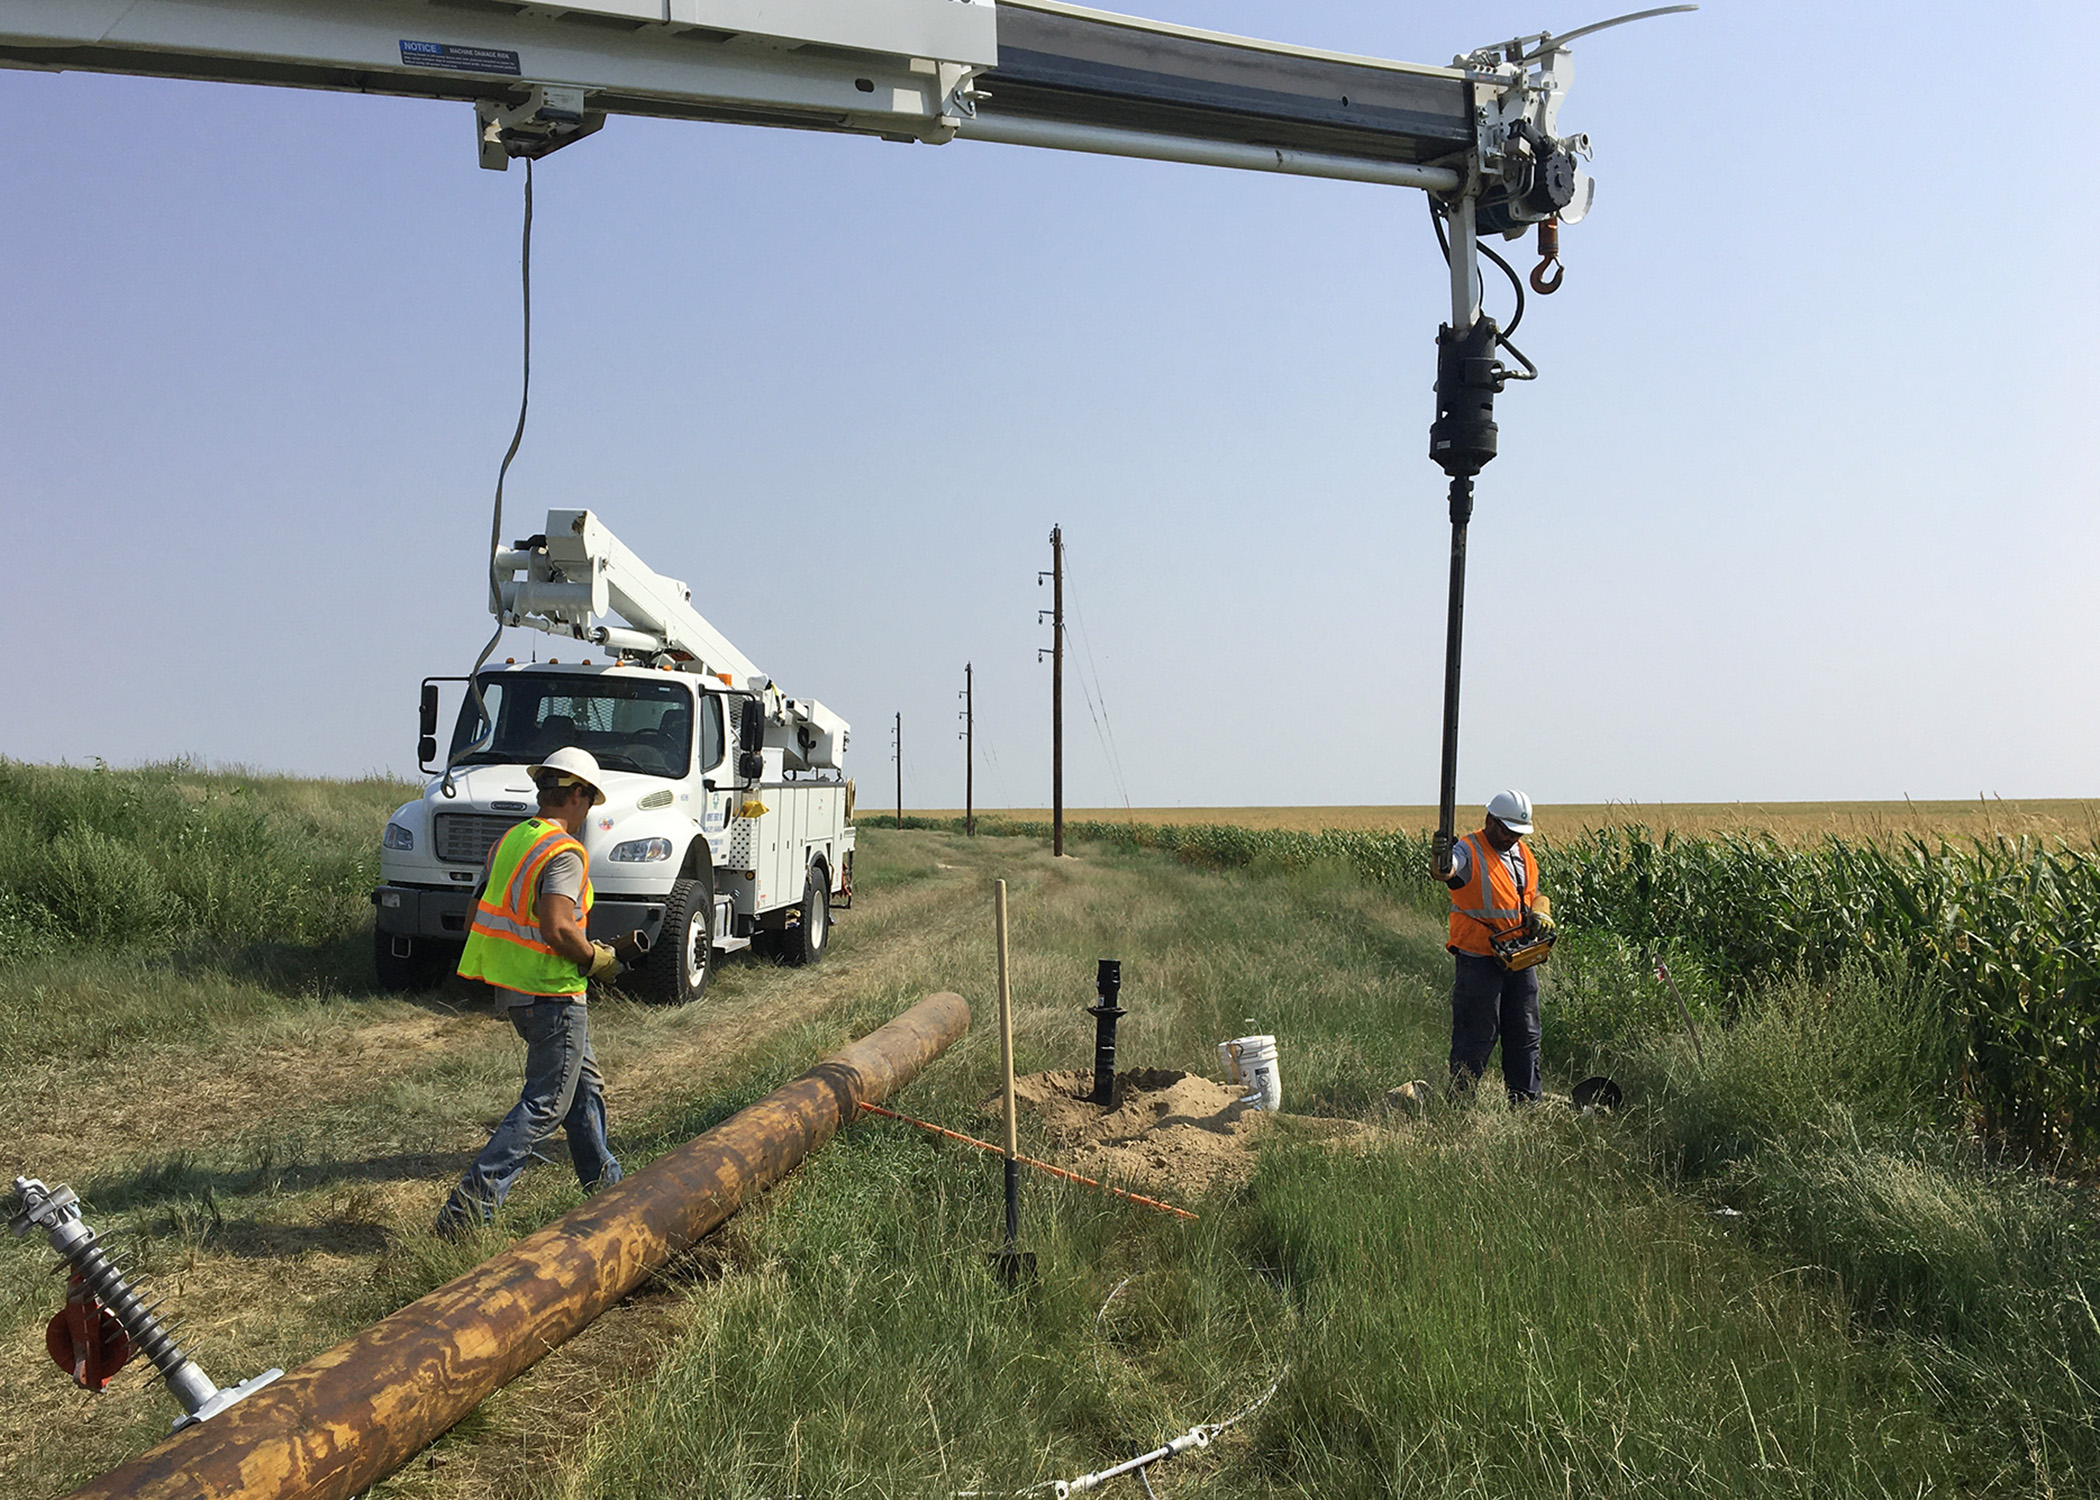 Two linemen in safety vests, working in a ditch near US-40, use a truck boom-mounted auger to drill a hole for a new power pole west of Winona, Kansas.